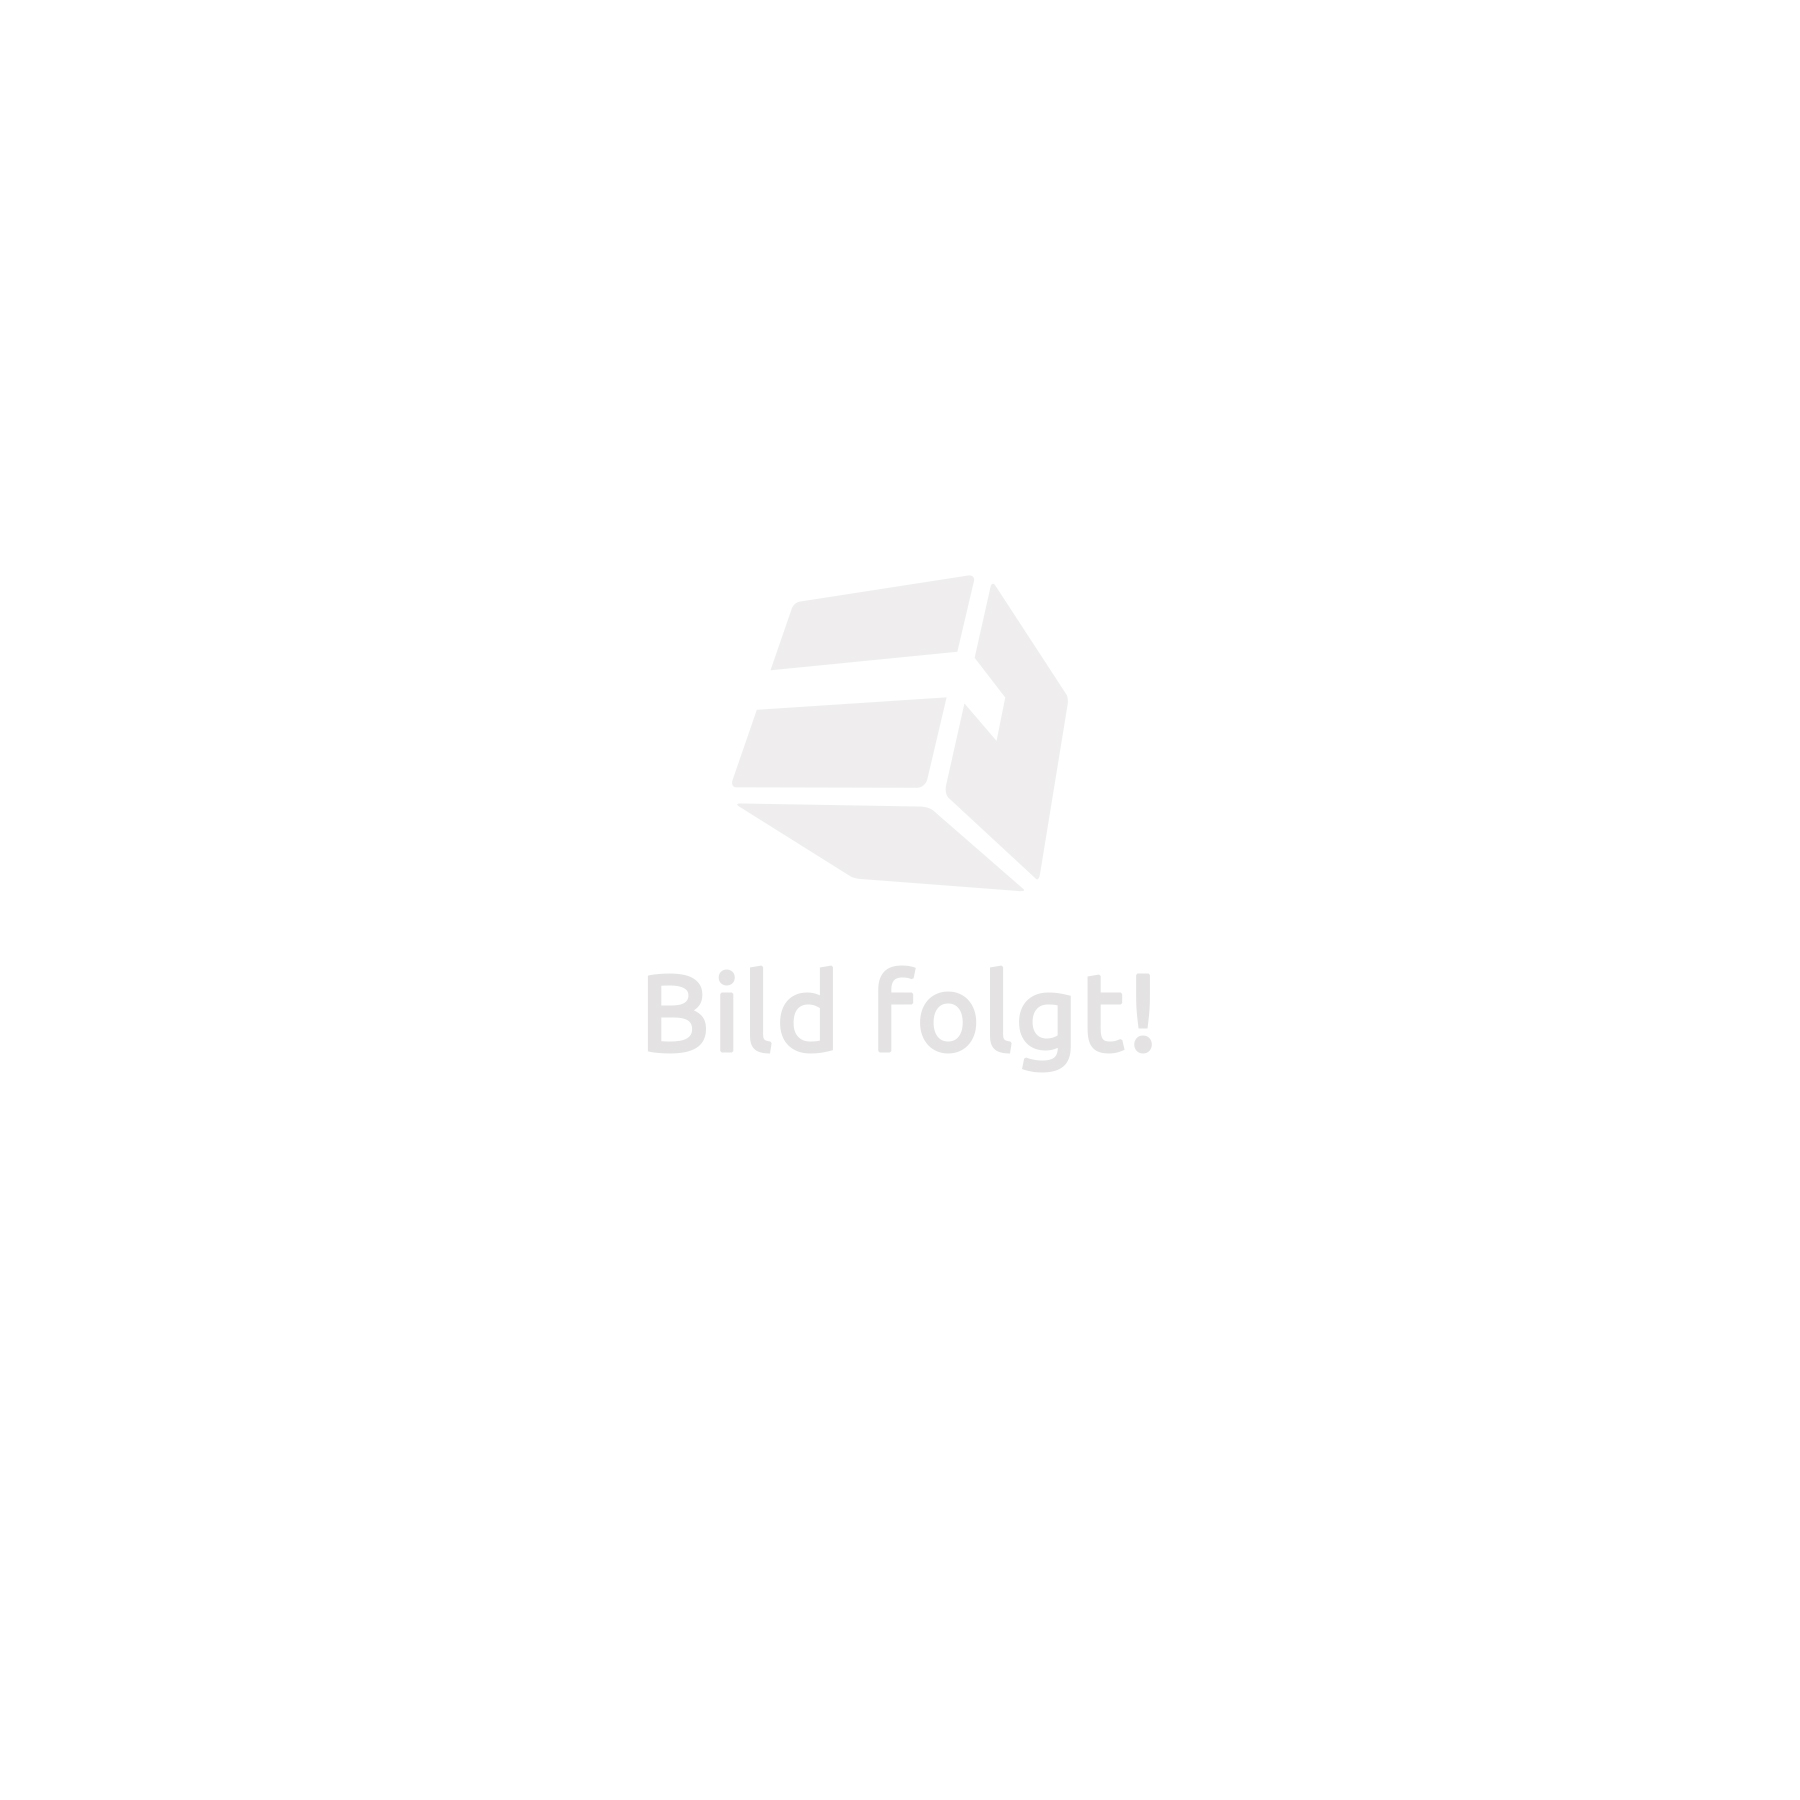 ... Porte Accord On Placard Pliante Extensible Pvc Salle De For Porte  Accordeon ...